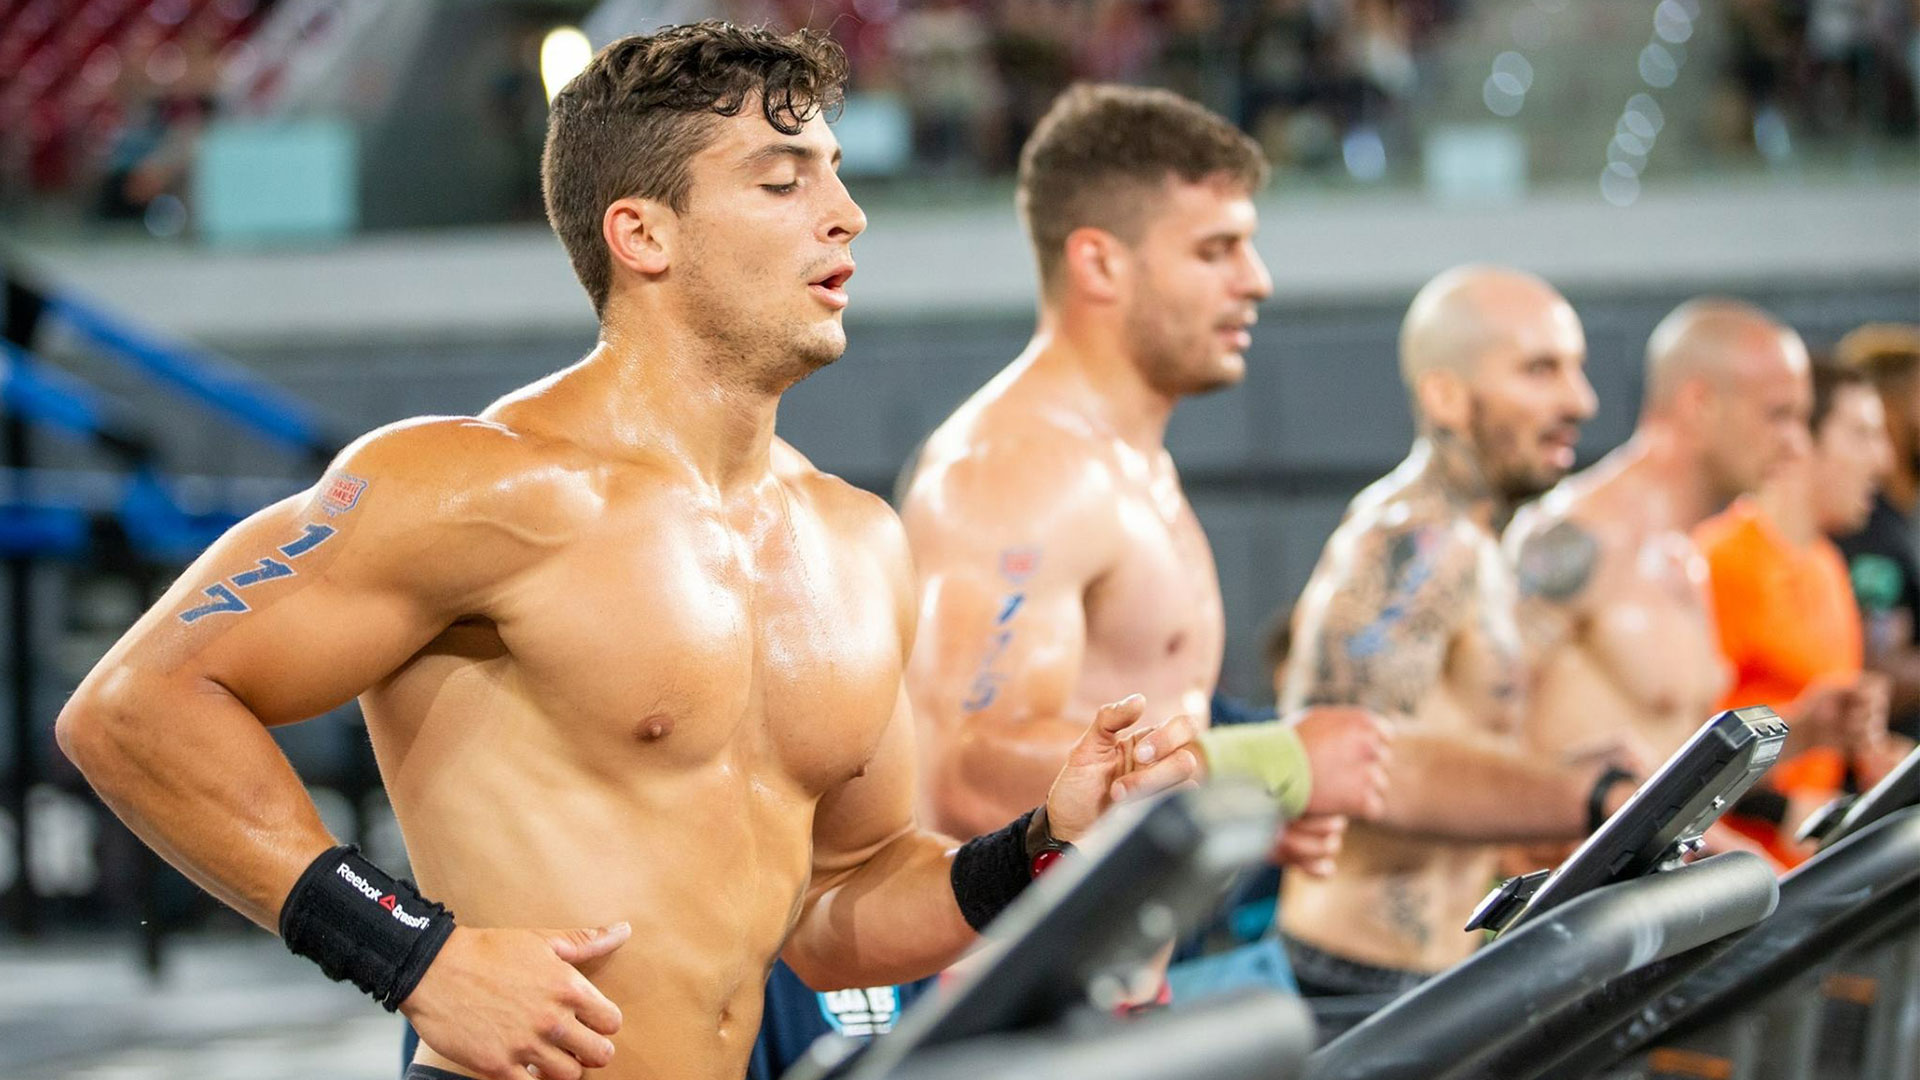 10 CrossFit Games Athletes Share Their Favorite WODs